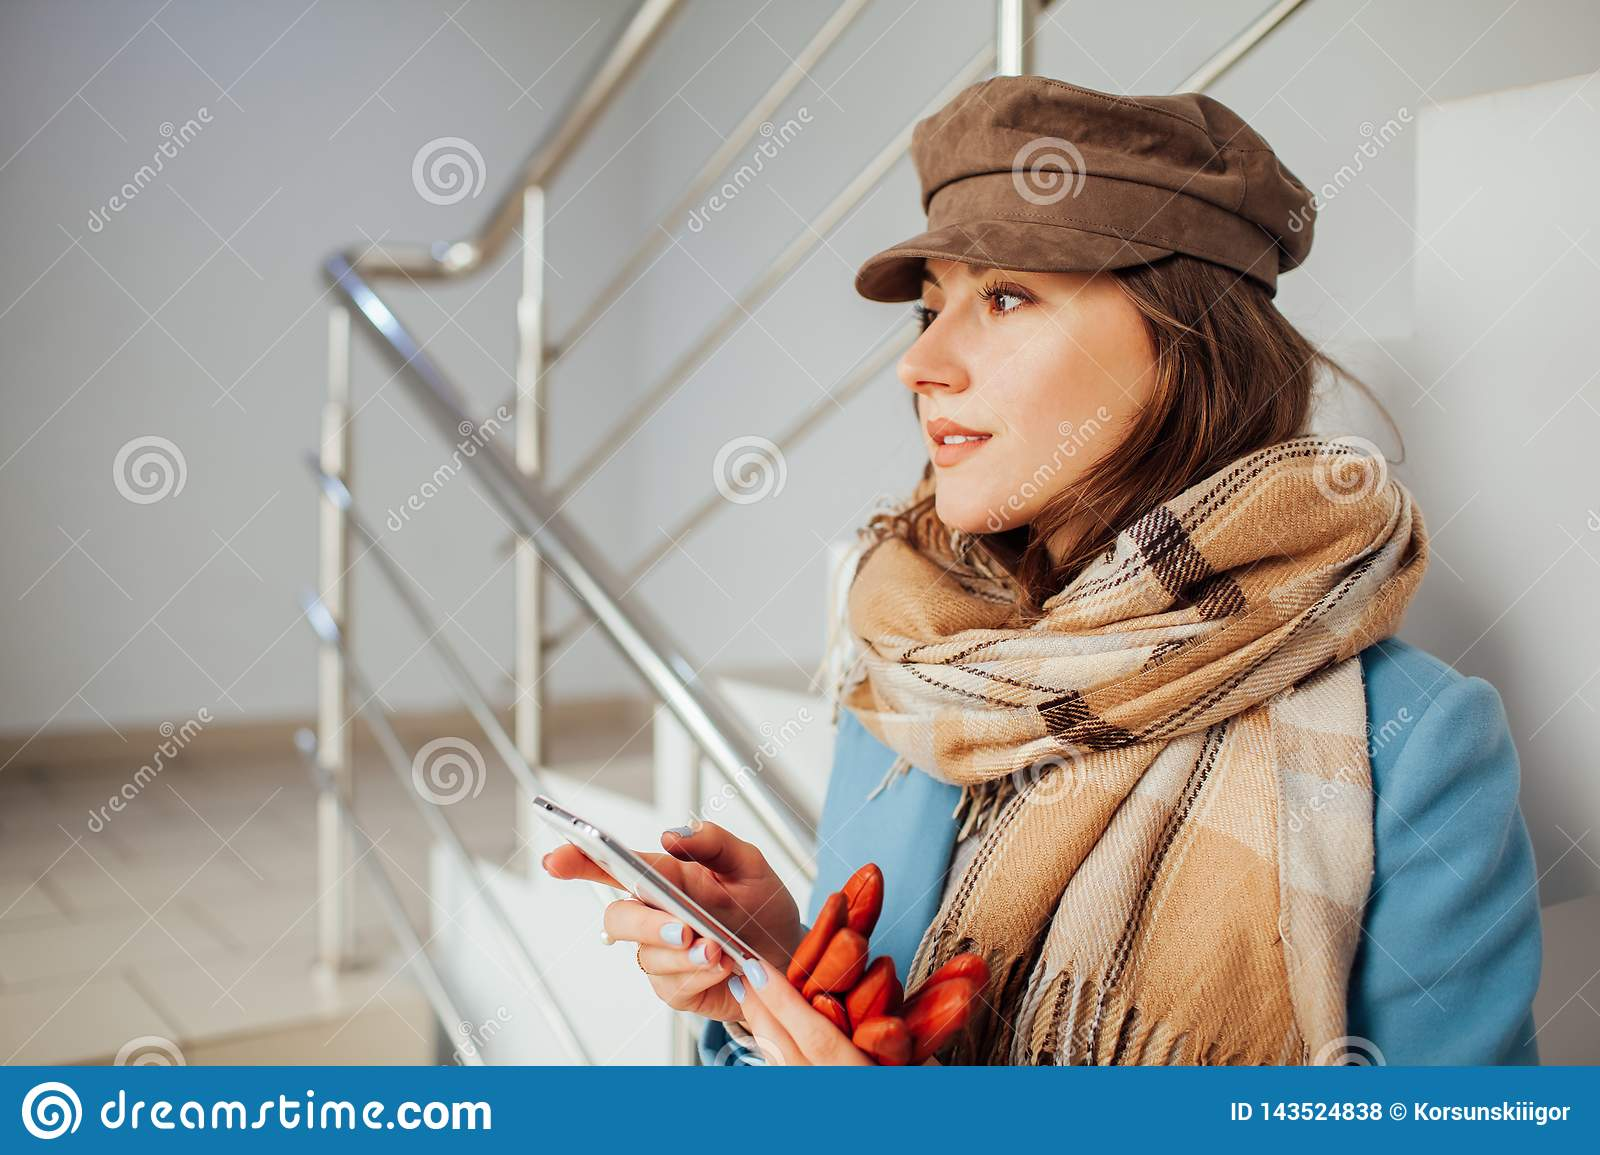 Business woman in coat stands on the stairs in the mall with smartphone. Shopping. Fashion